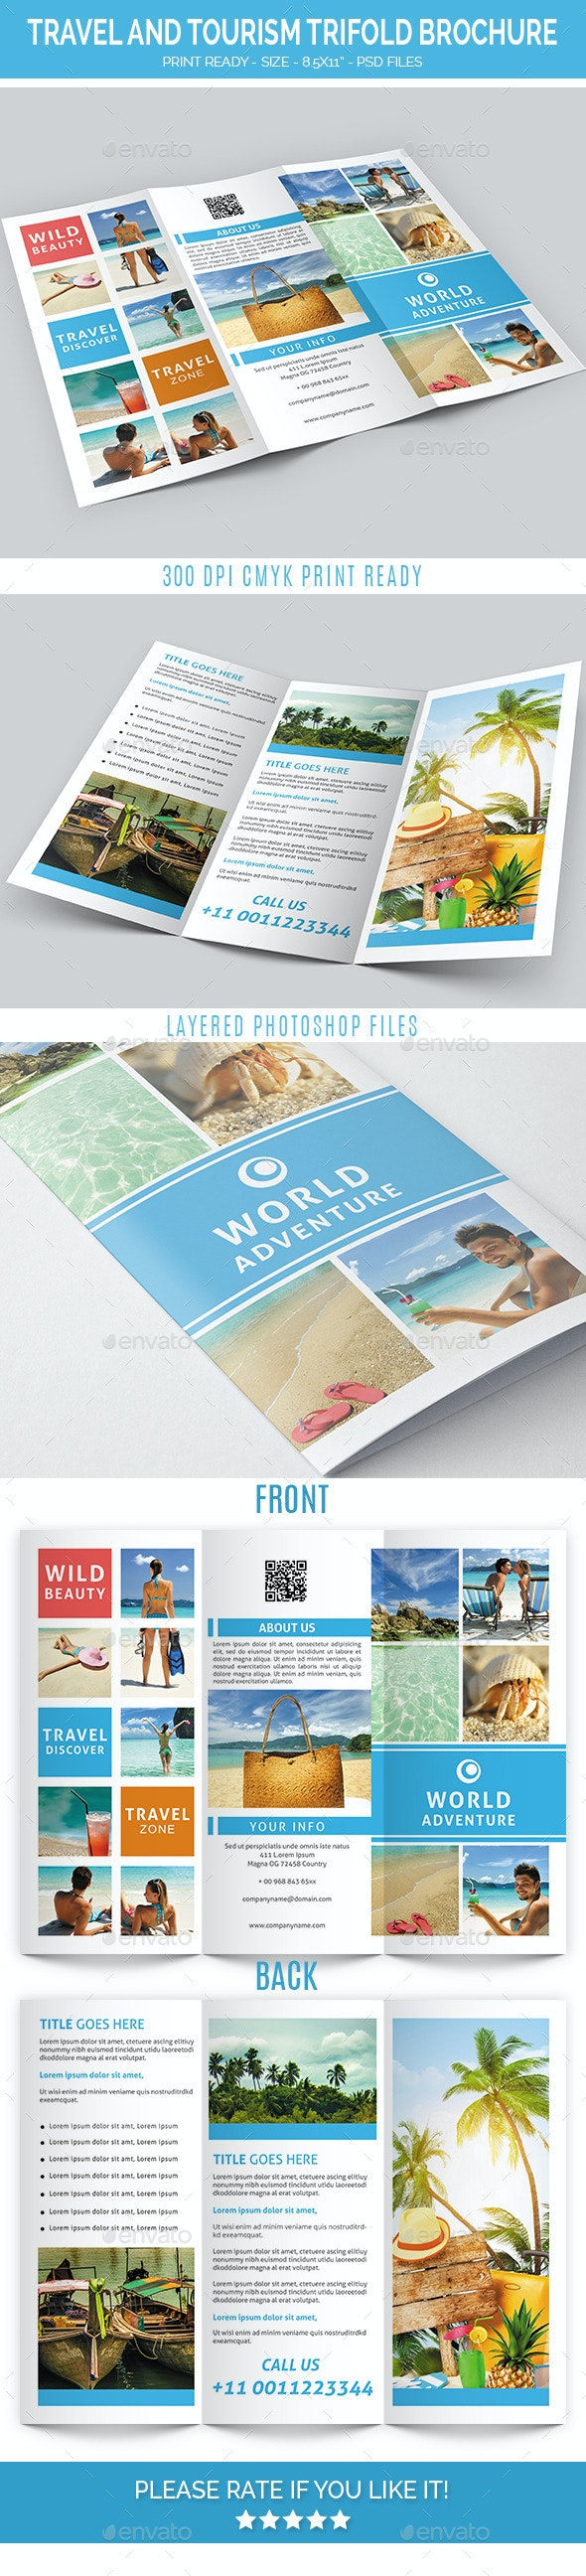 Travel and Tourism Trifold Brochure - Brochures Print Templates